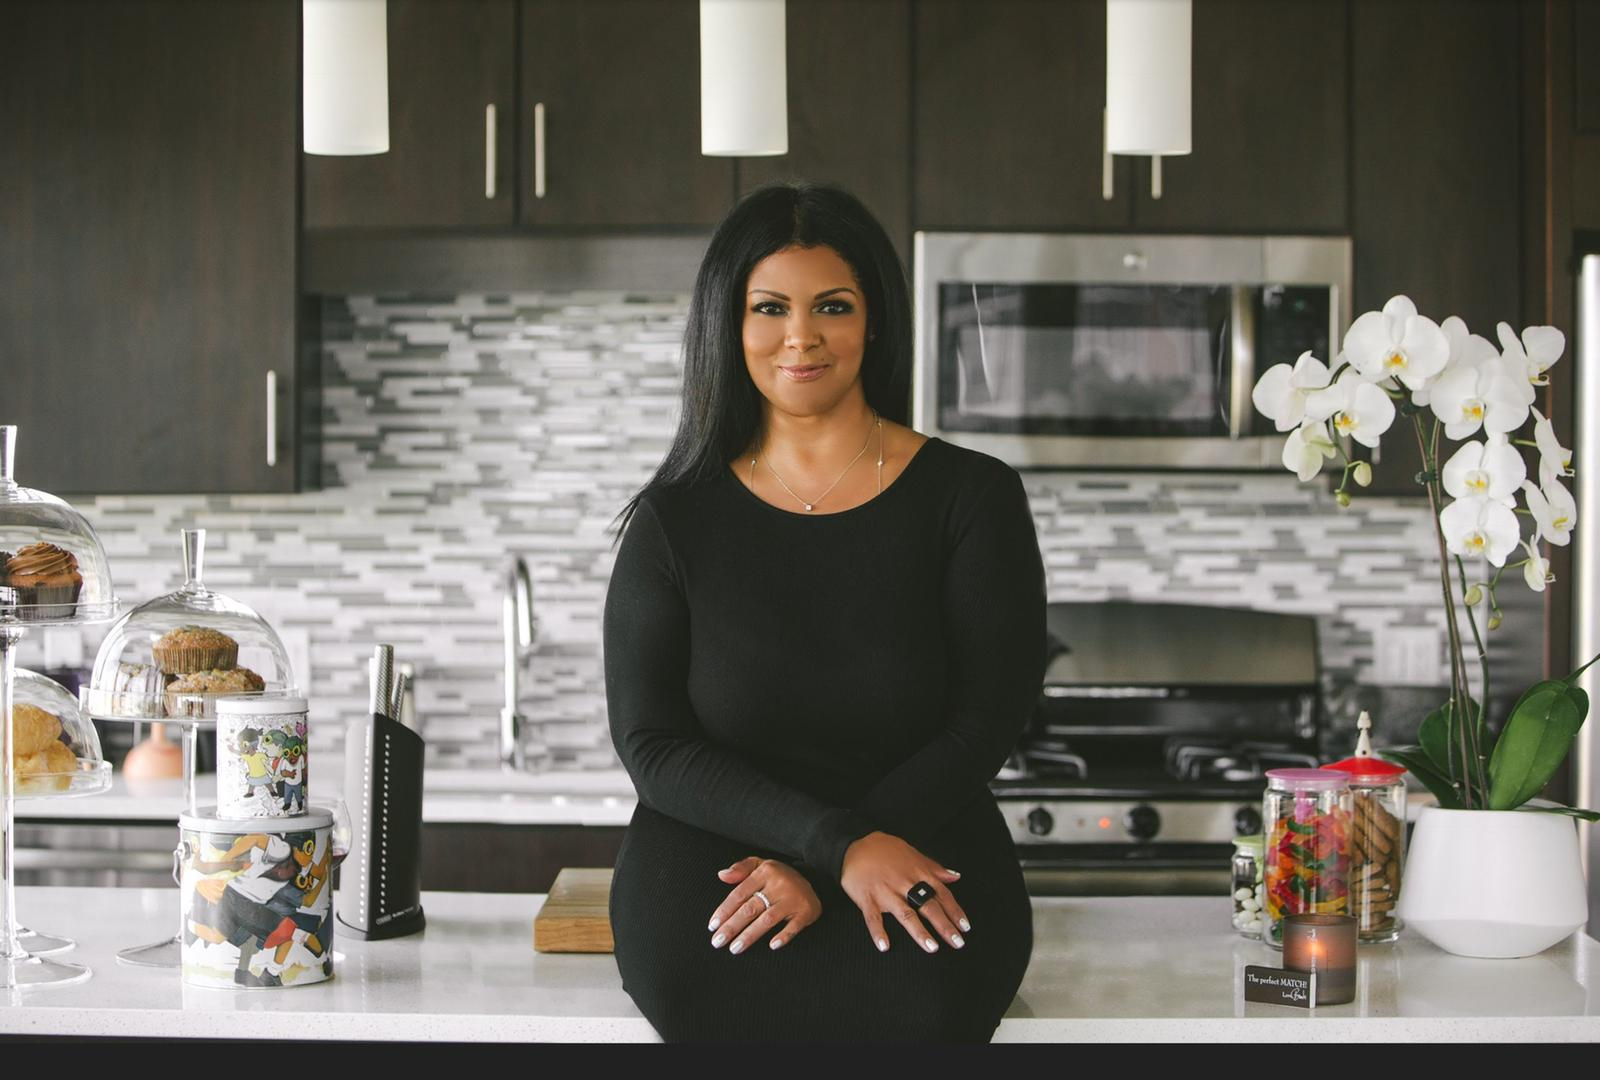 Montgomery, a Chicago native, has a diverse resume that also boasts of working as a perfumer, product developer, salon/spa owner and interior designer (PHOTO/Courtesy)